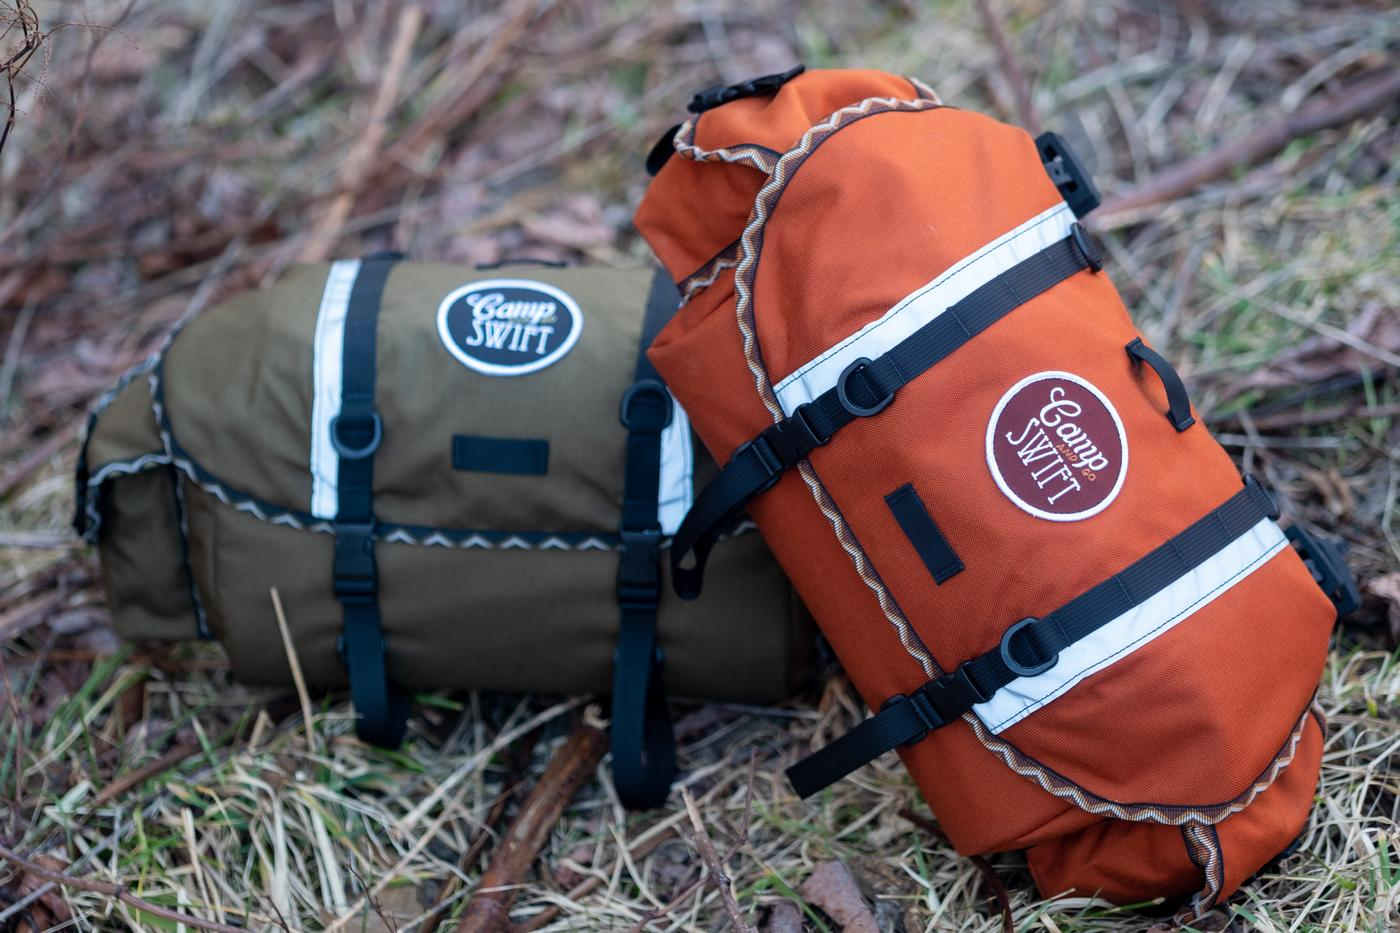 Swift Industries and Camp and Go Slow Diamondback Rattlesnake Bags